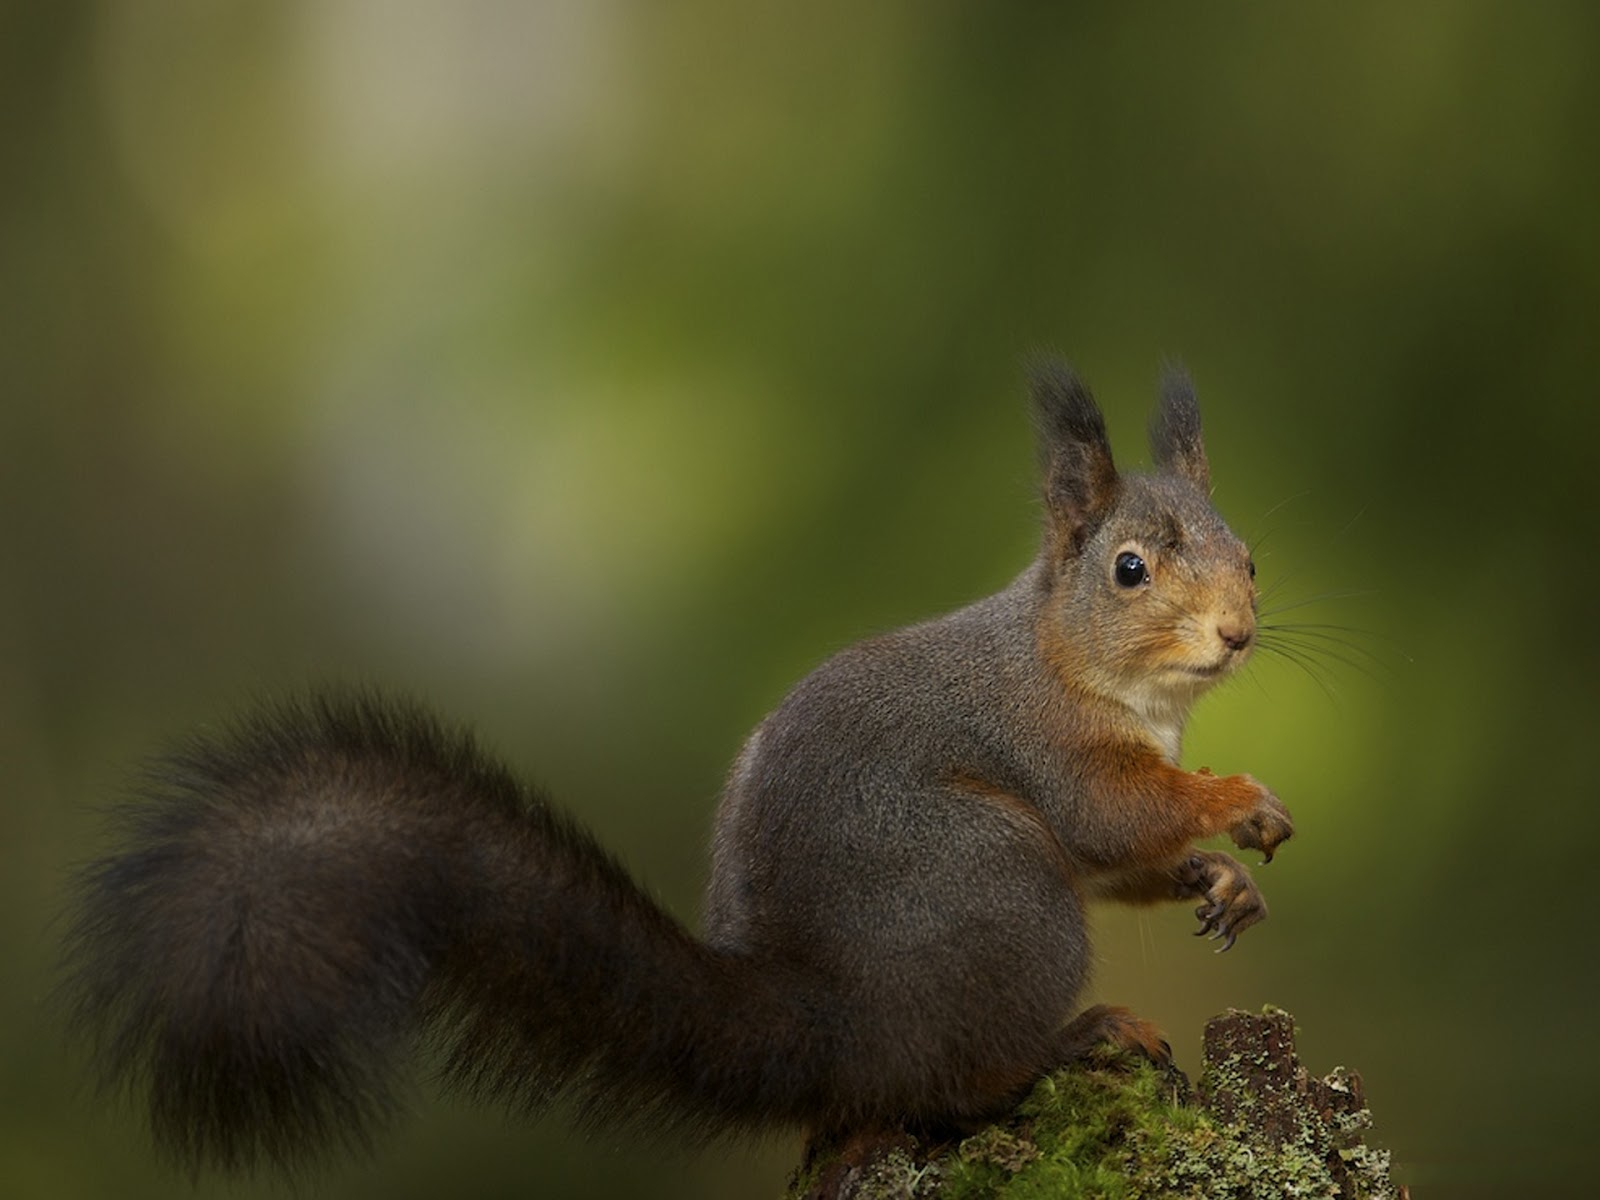 squirrel wallpaper - photo #5